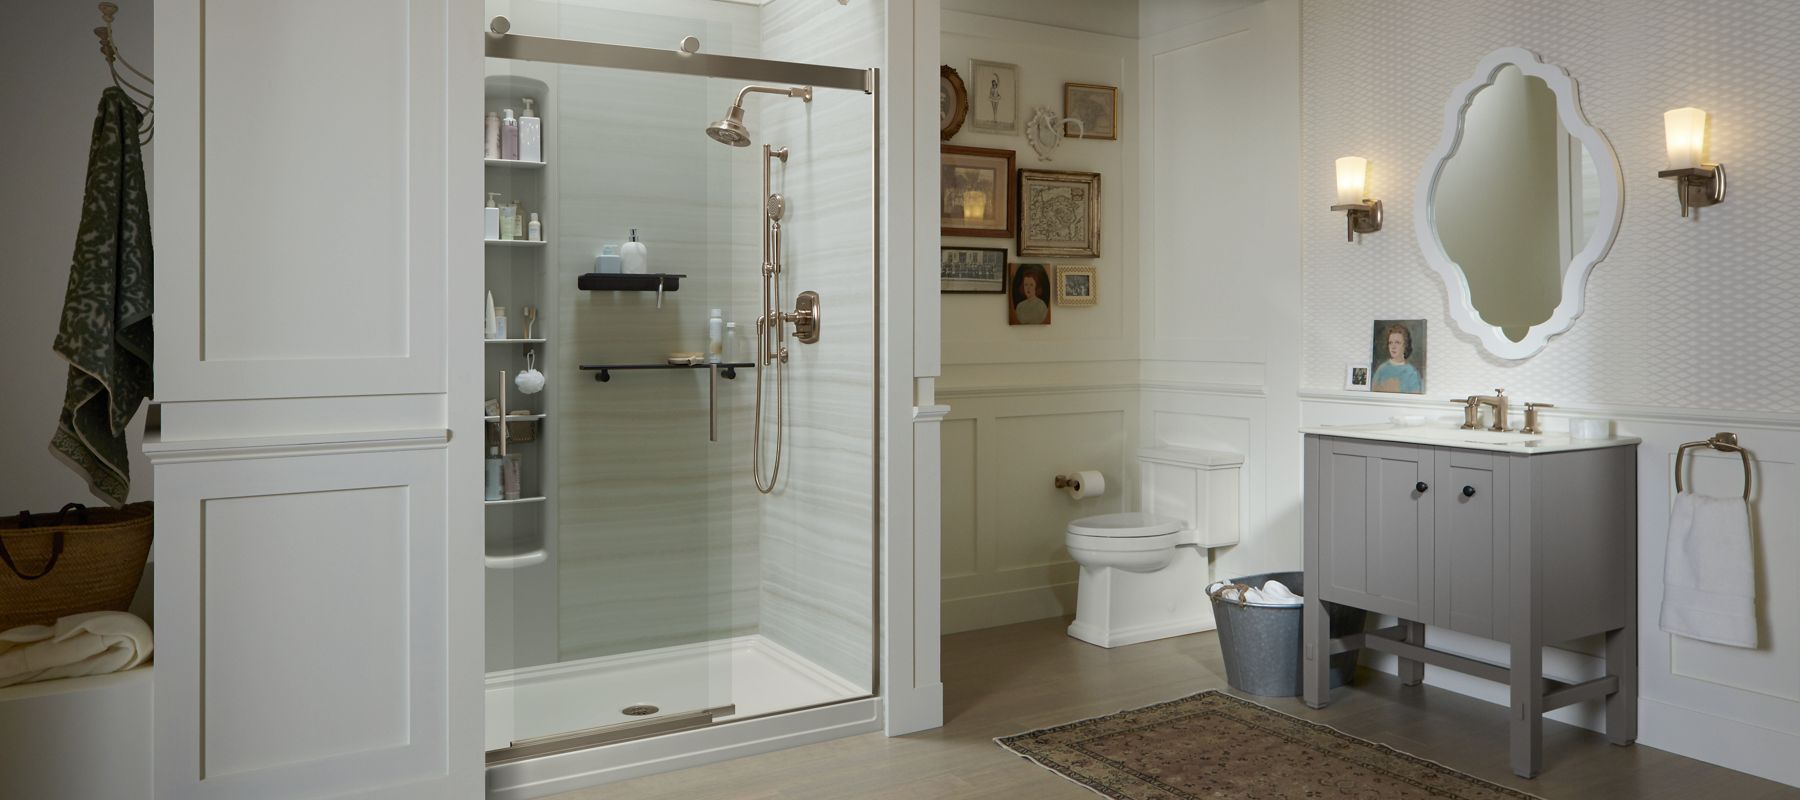 Shower doors showering bathroom kohler for Jamaican bathroom designs